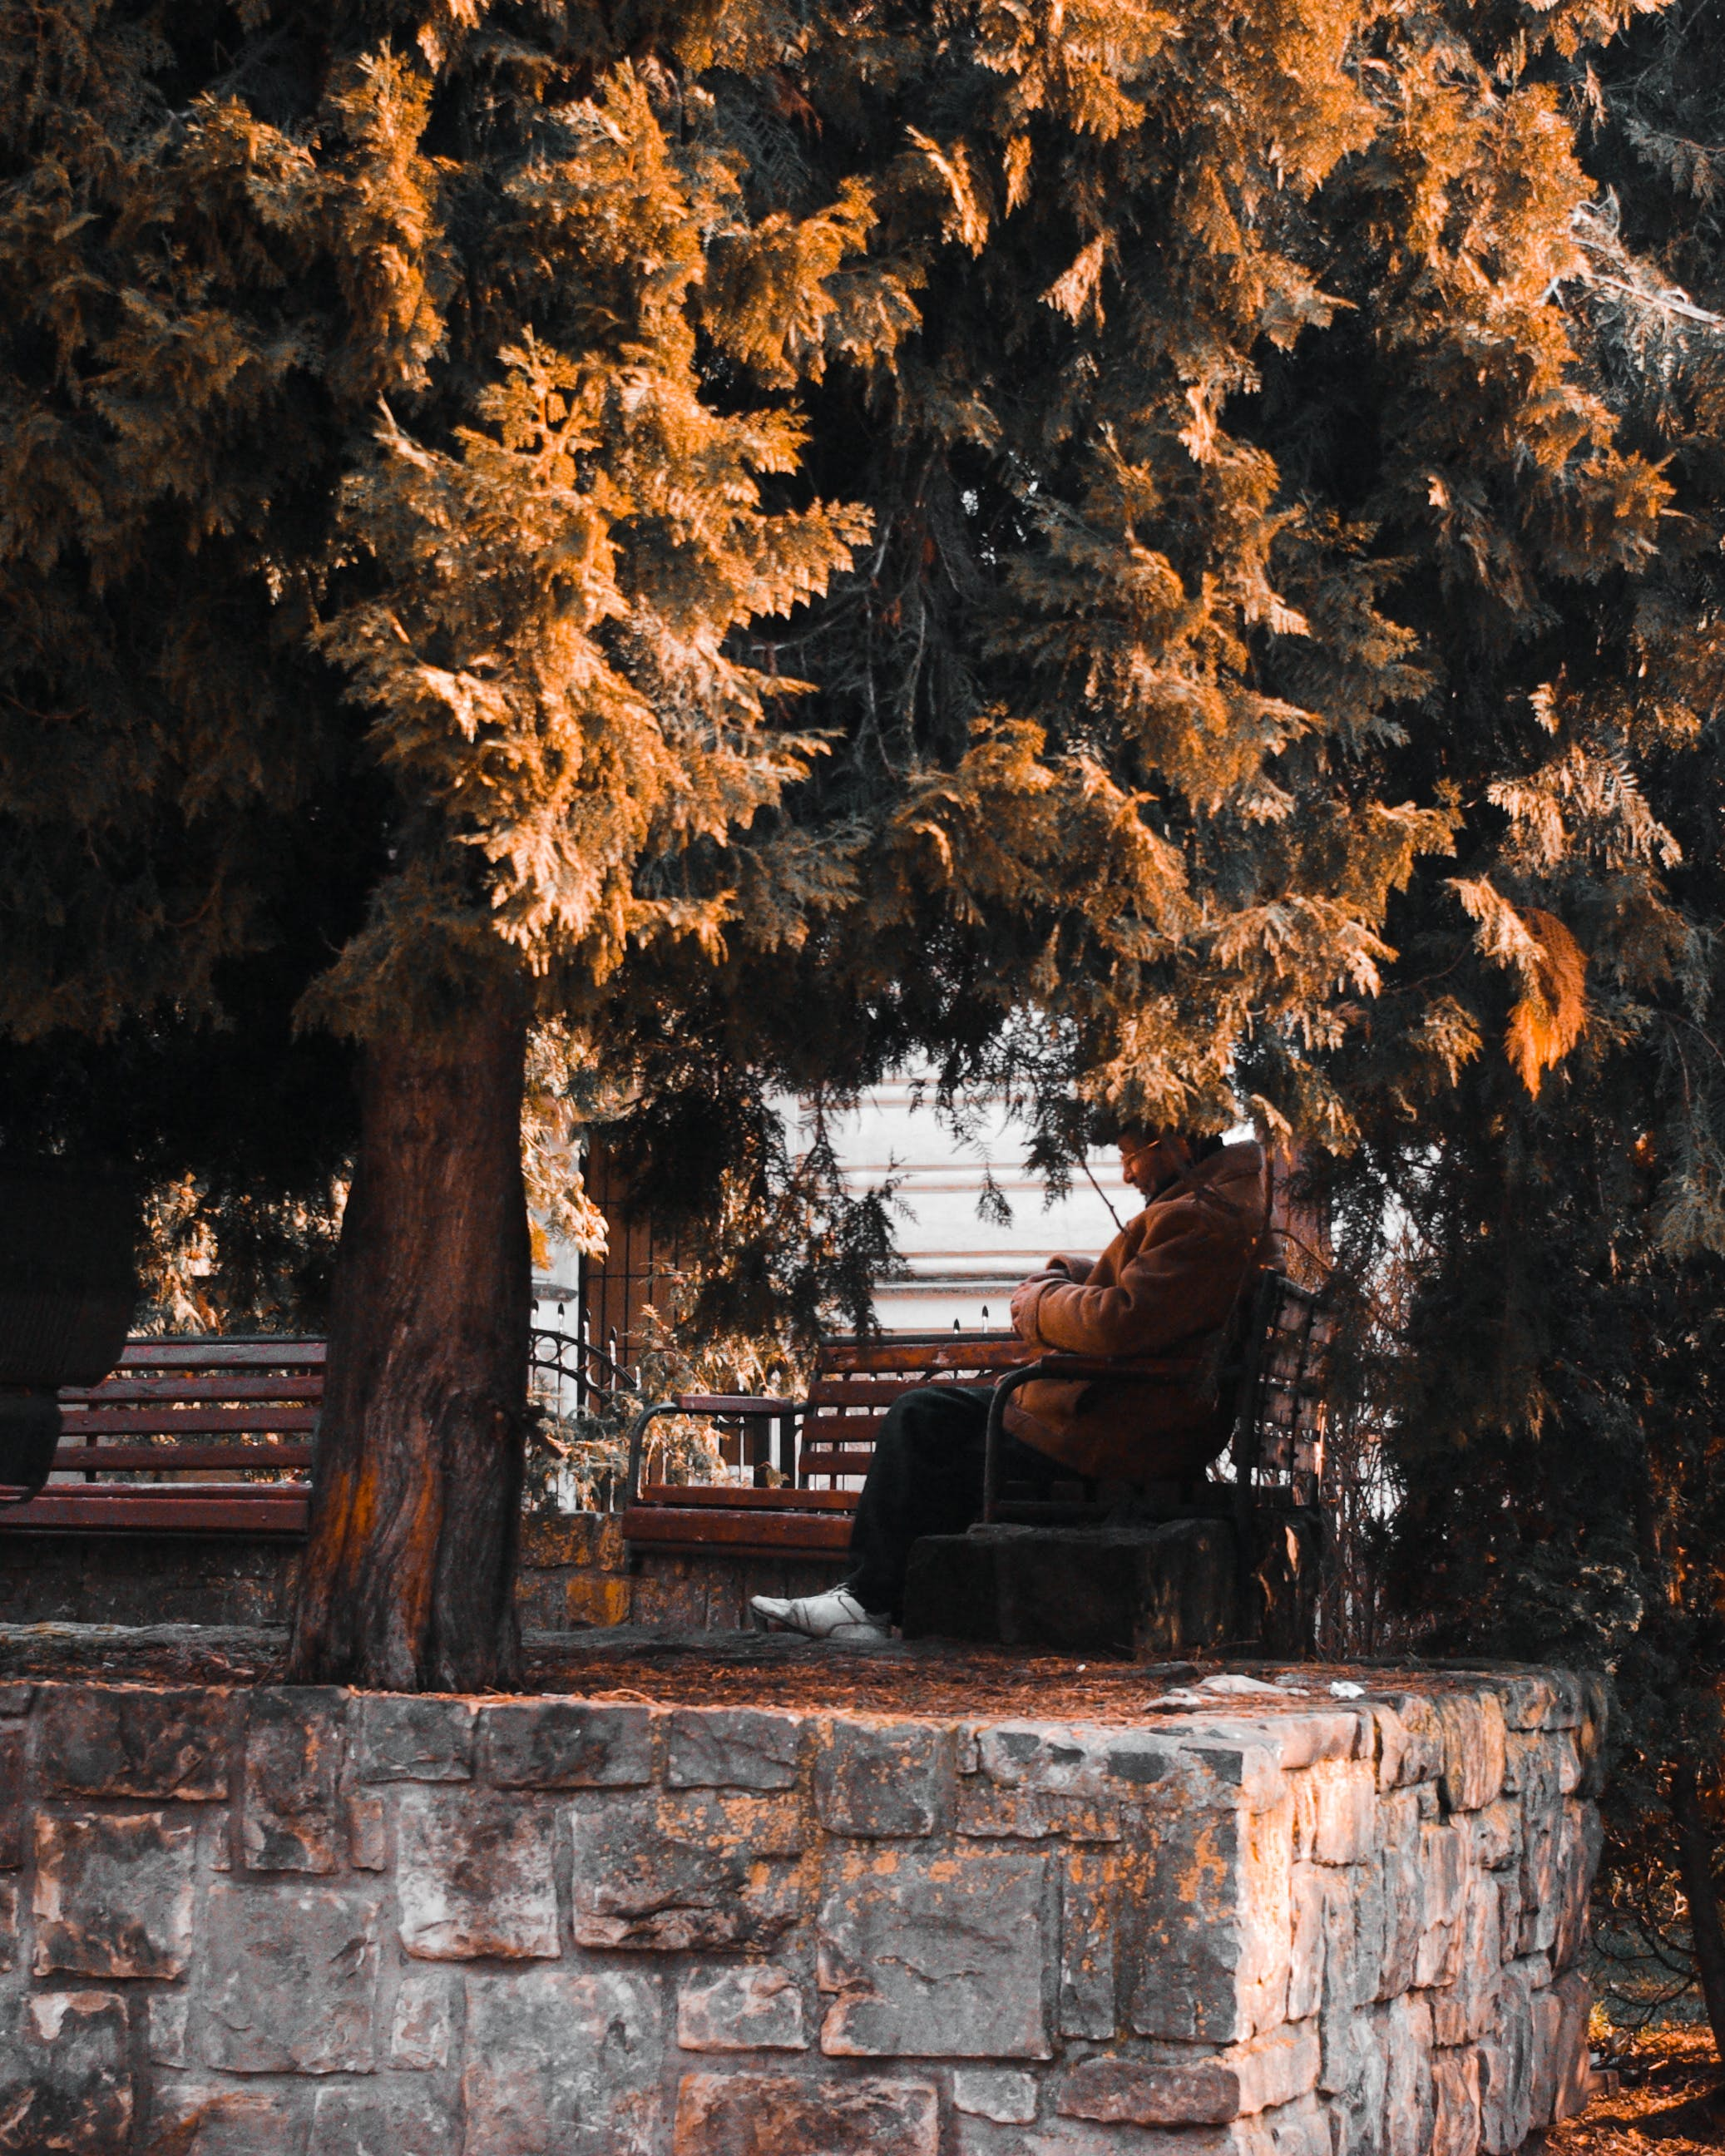 Person in Beige Jacket Sitting on Outdoor Bench Near Tree